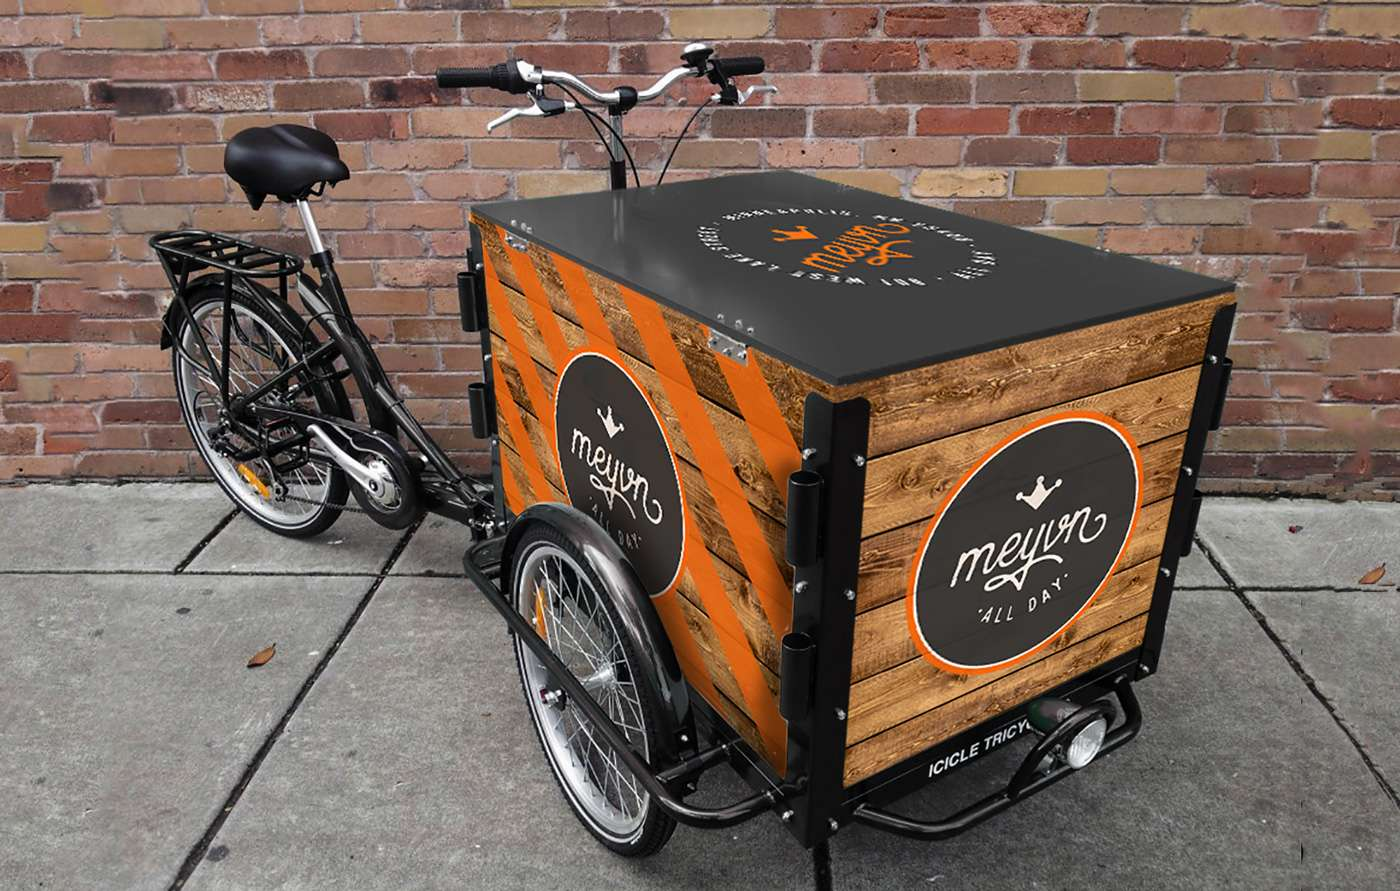 Delivery bicycle signage designed for Meyvn restaurant